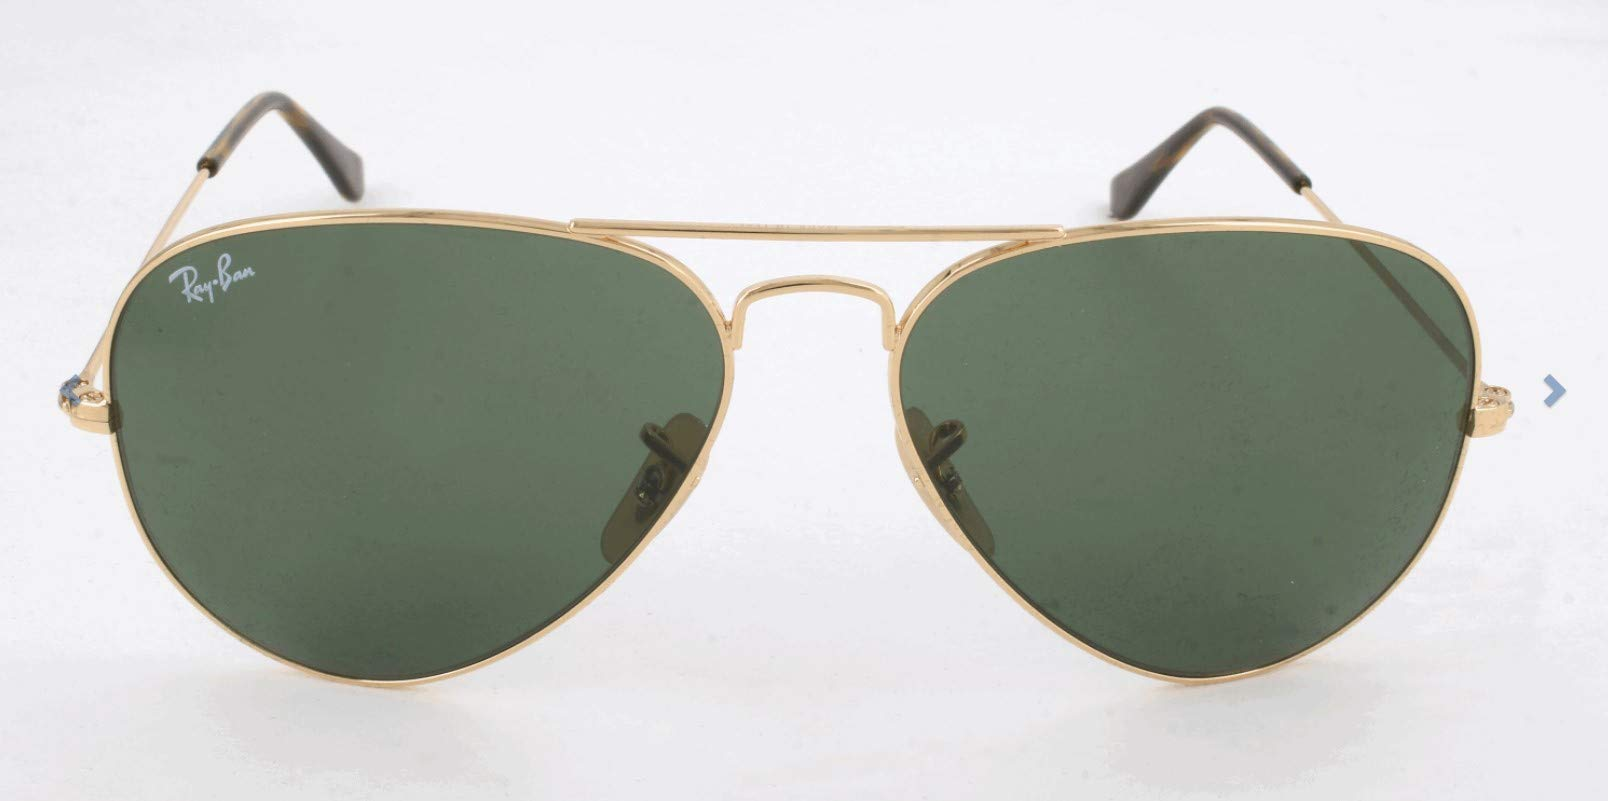 RAY-BAN RB3025 Aviator Large Metal Sunglasses, Gold/Crystal Green, 62 mm by RAY-BAN